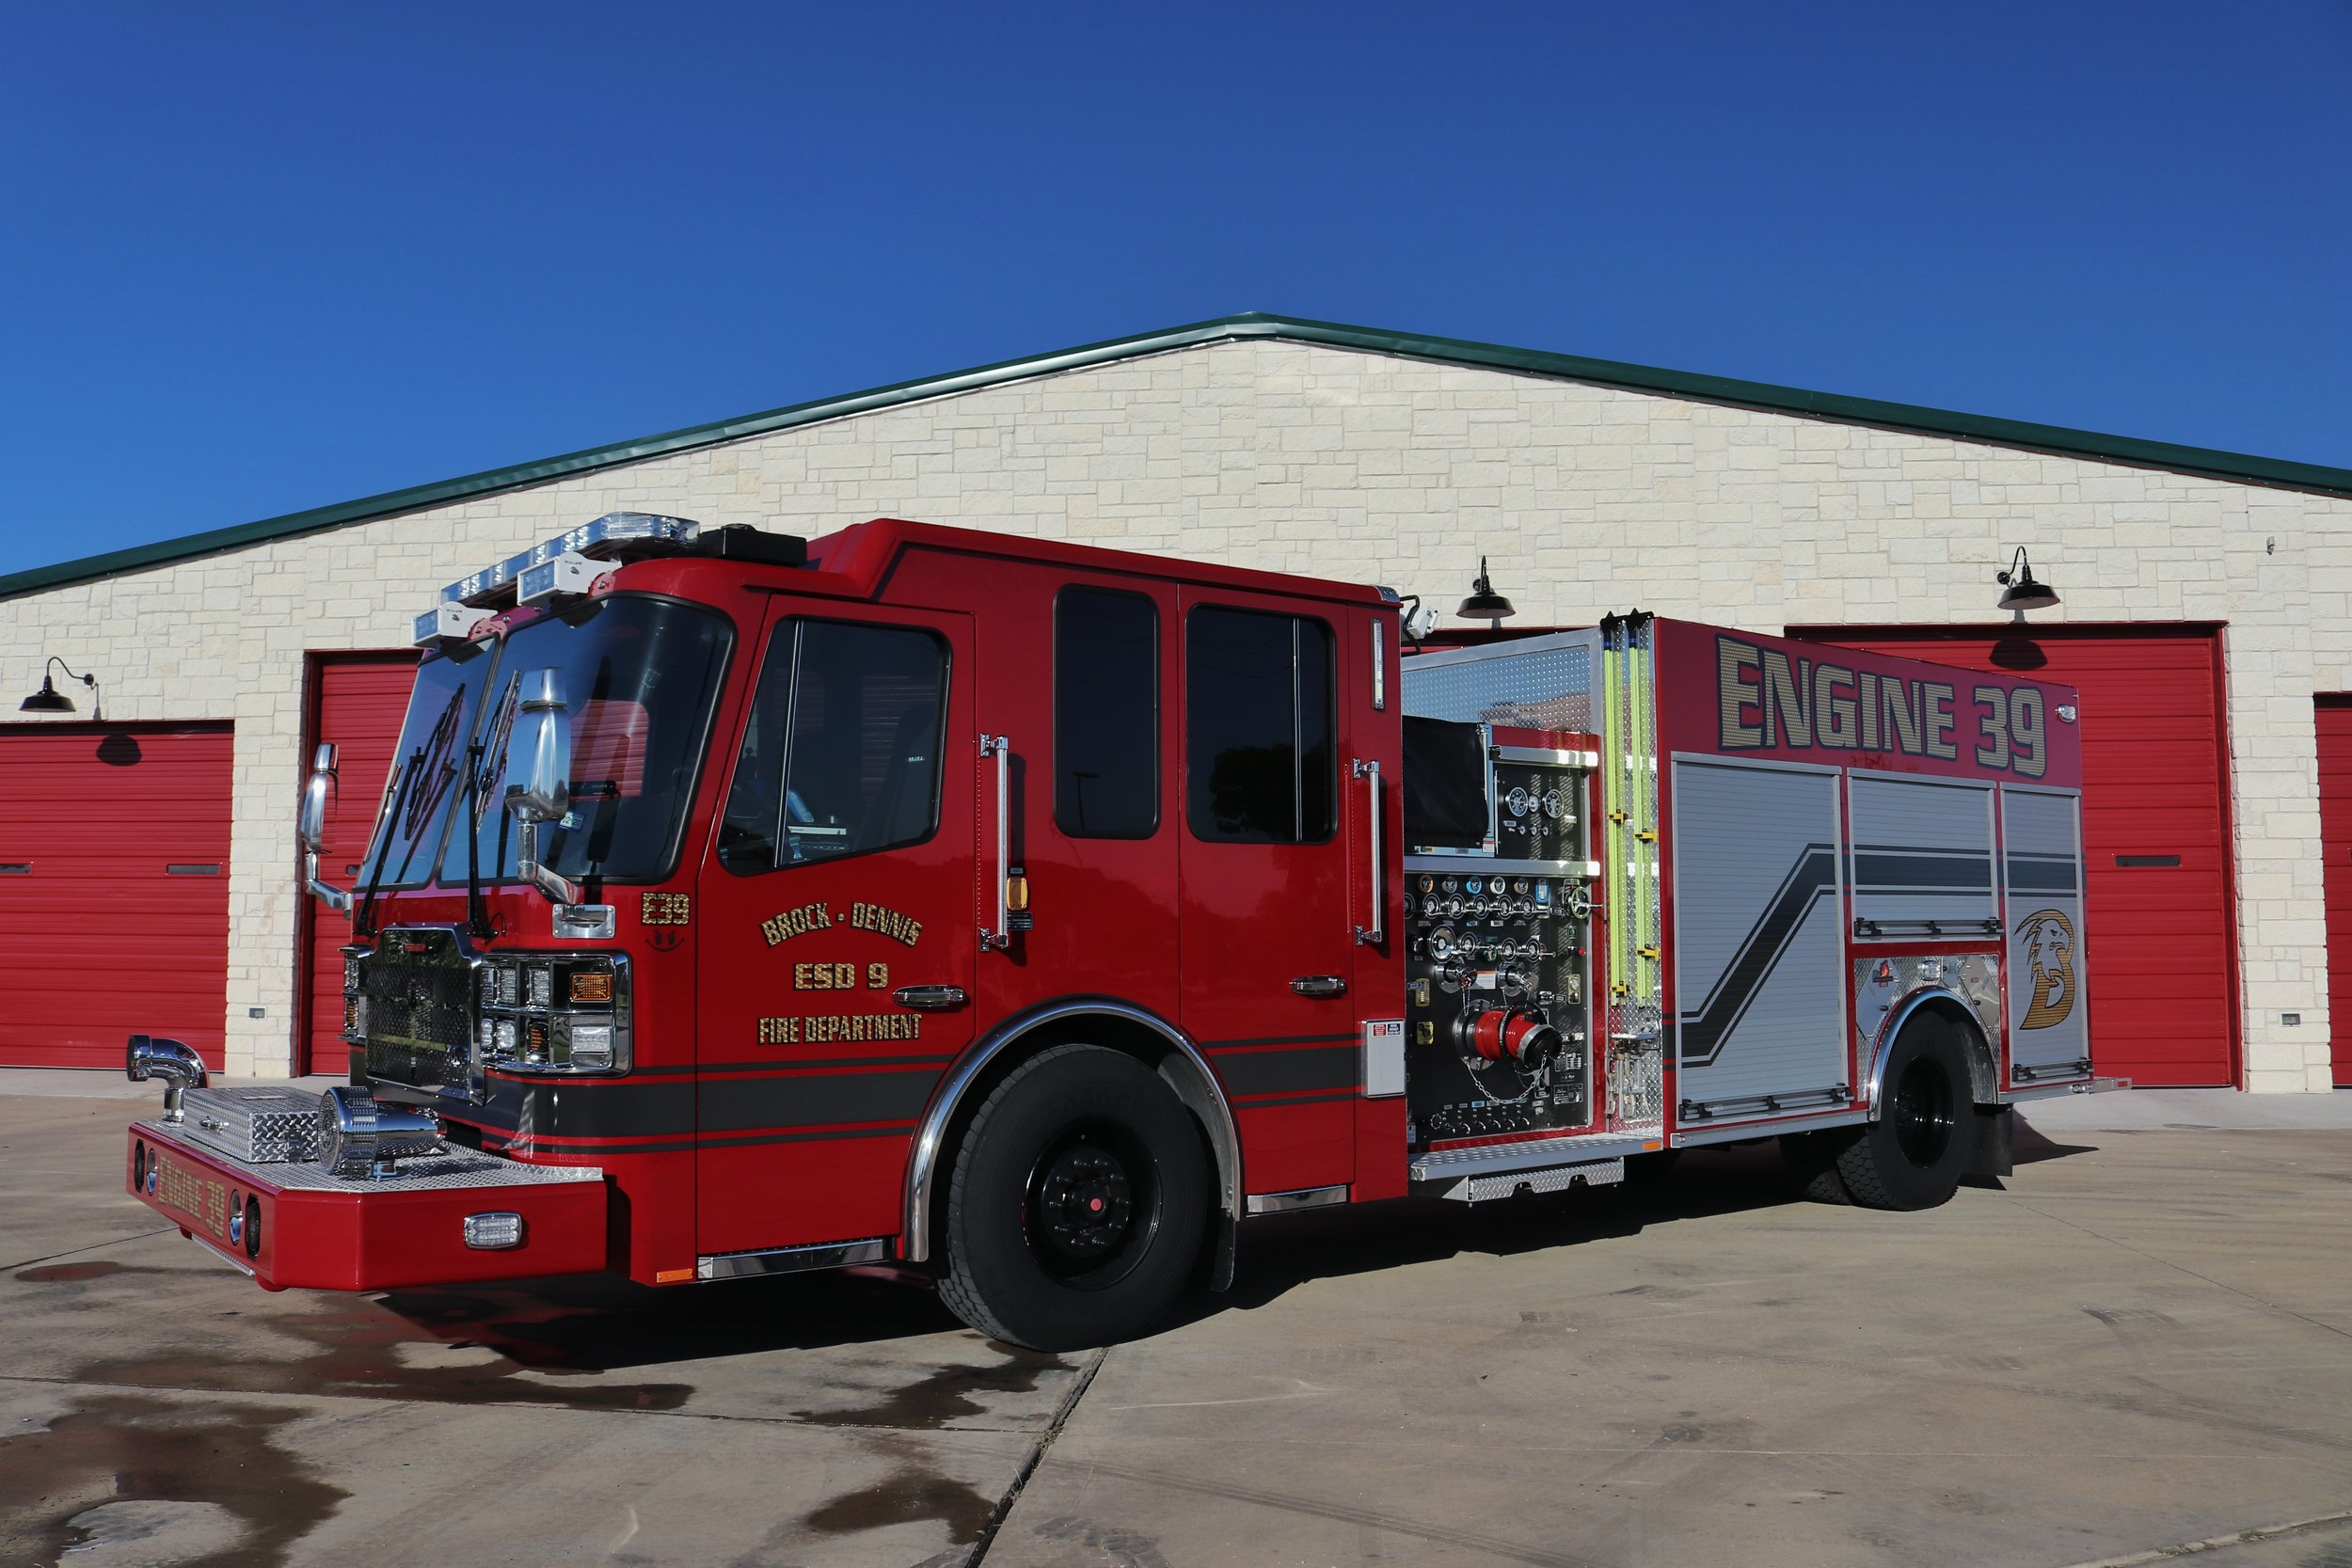 Engine 39 - Located at Station 1 is our 2019 Ferrara custom cab engine. This engine has a carrying capacity of 1000 gallons of water, rescue tools, and 6 firefighters. Funding was thankfully provided by ESD #9 and a grant from the Texas Forest Service.